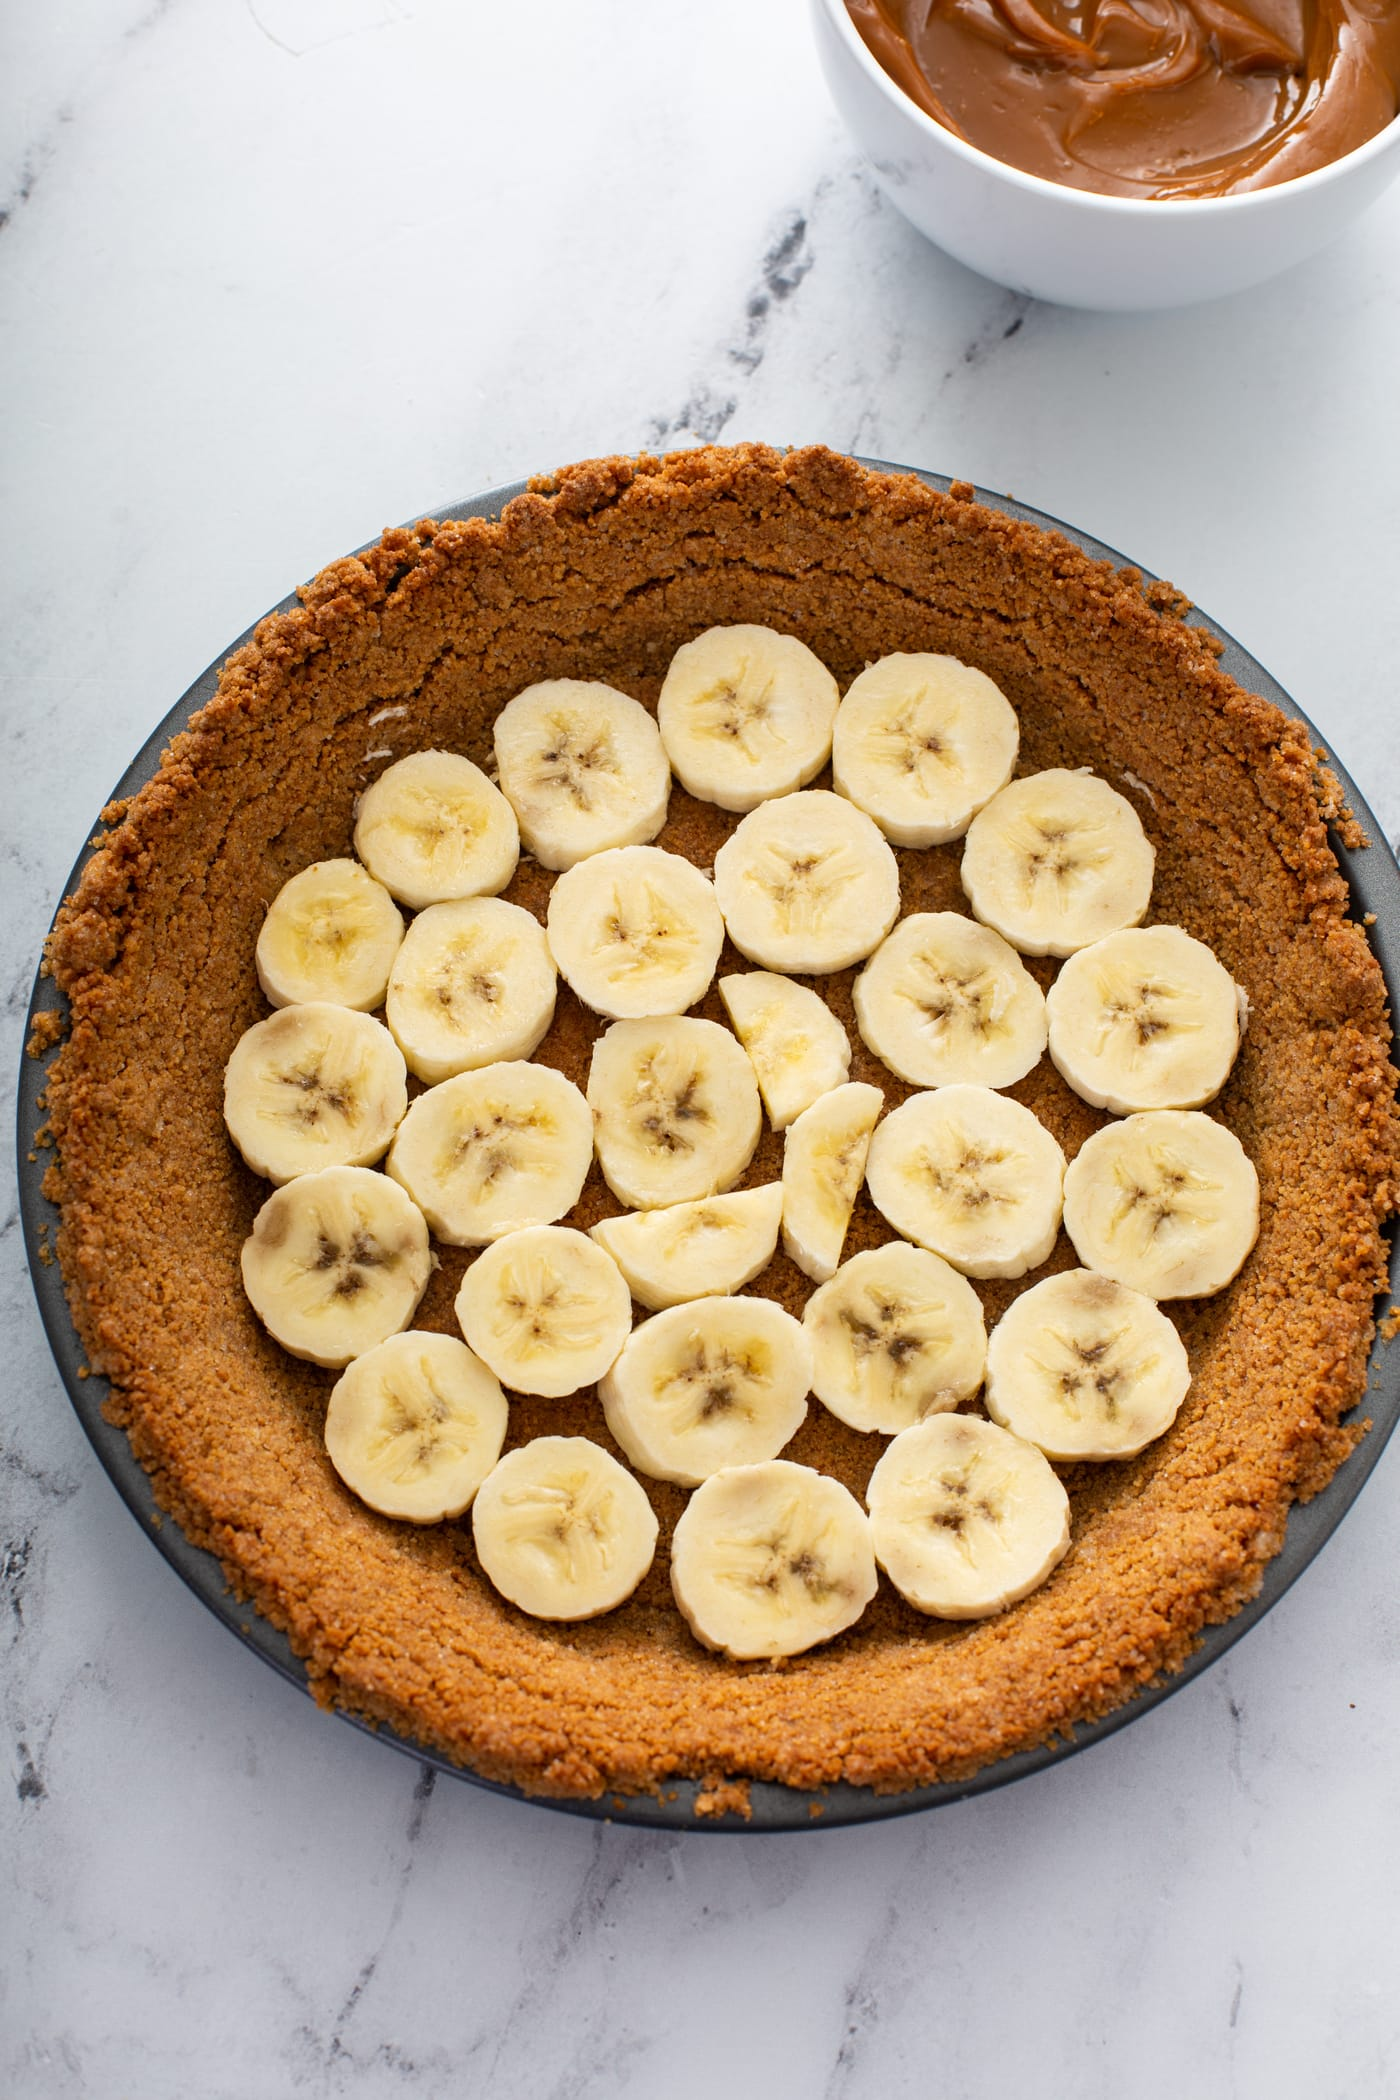 A graham cracker crust with sliced bananas covering the bottom of the crust.